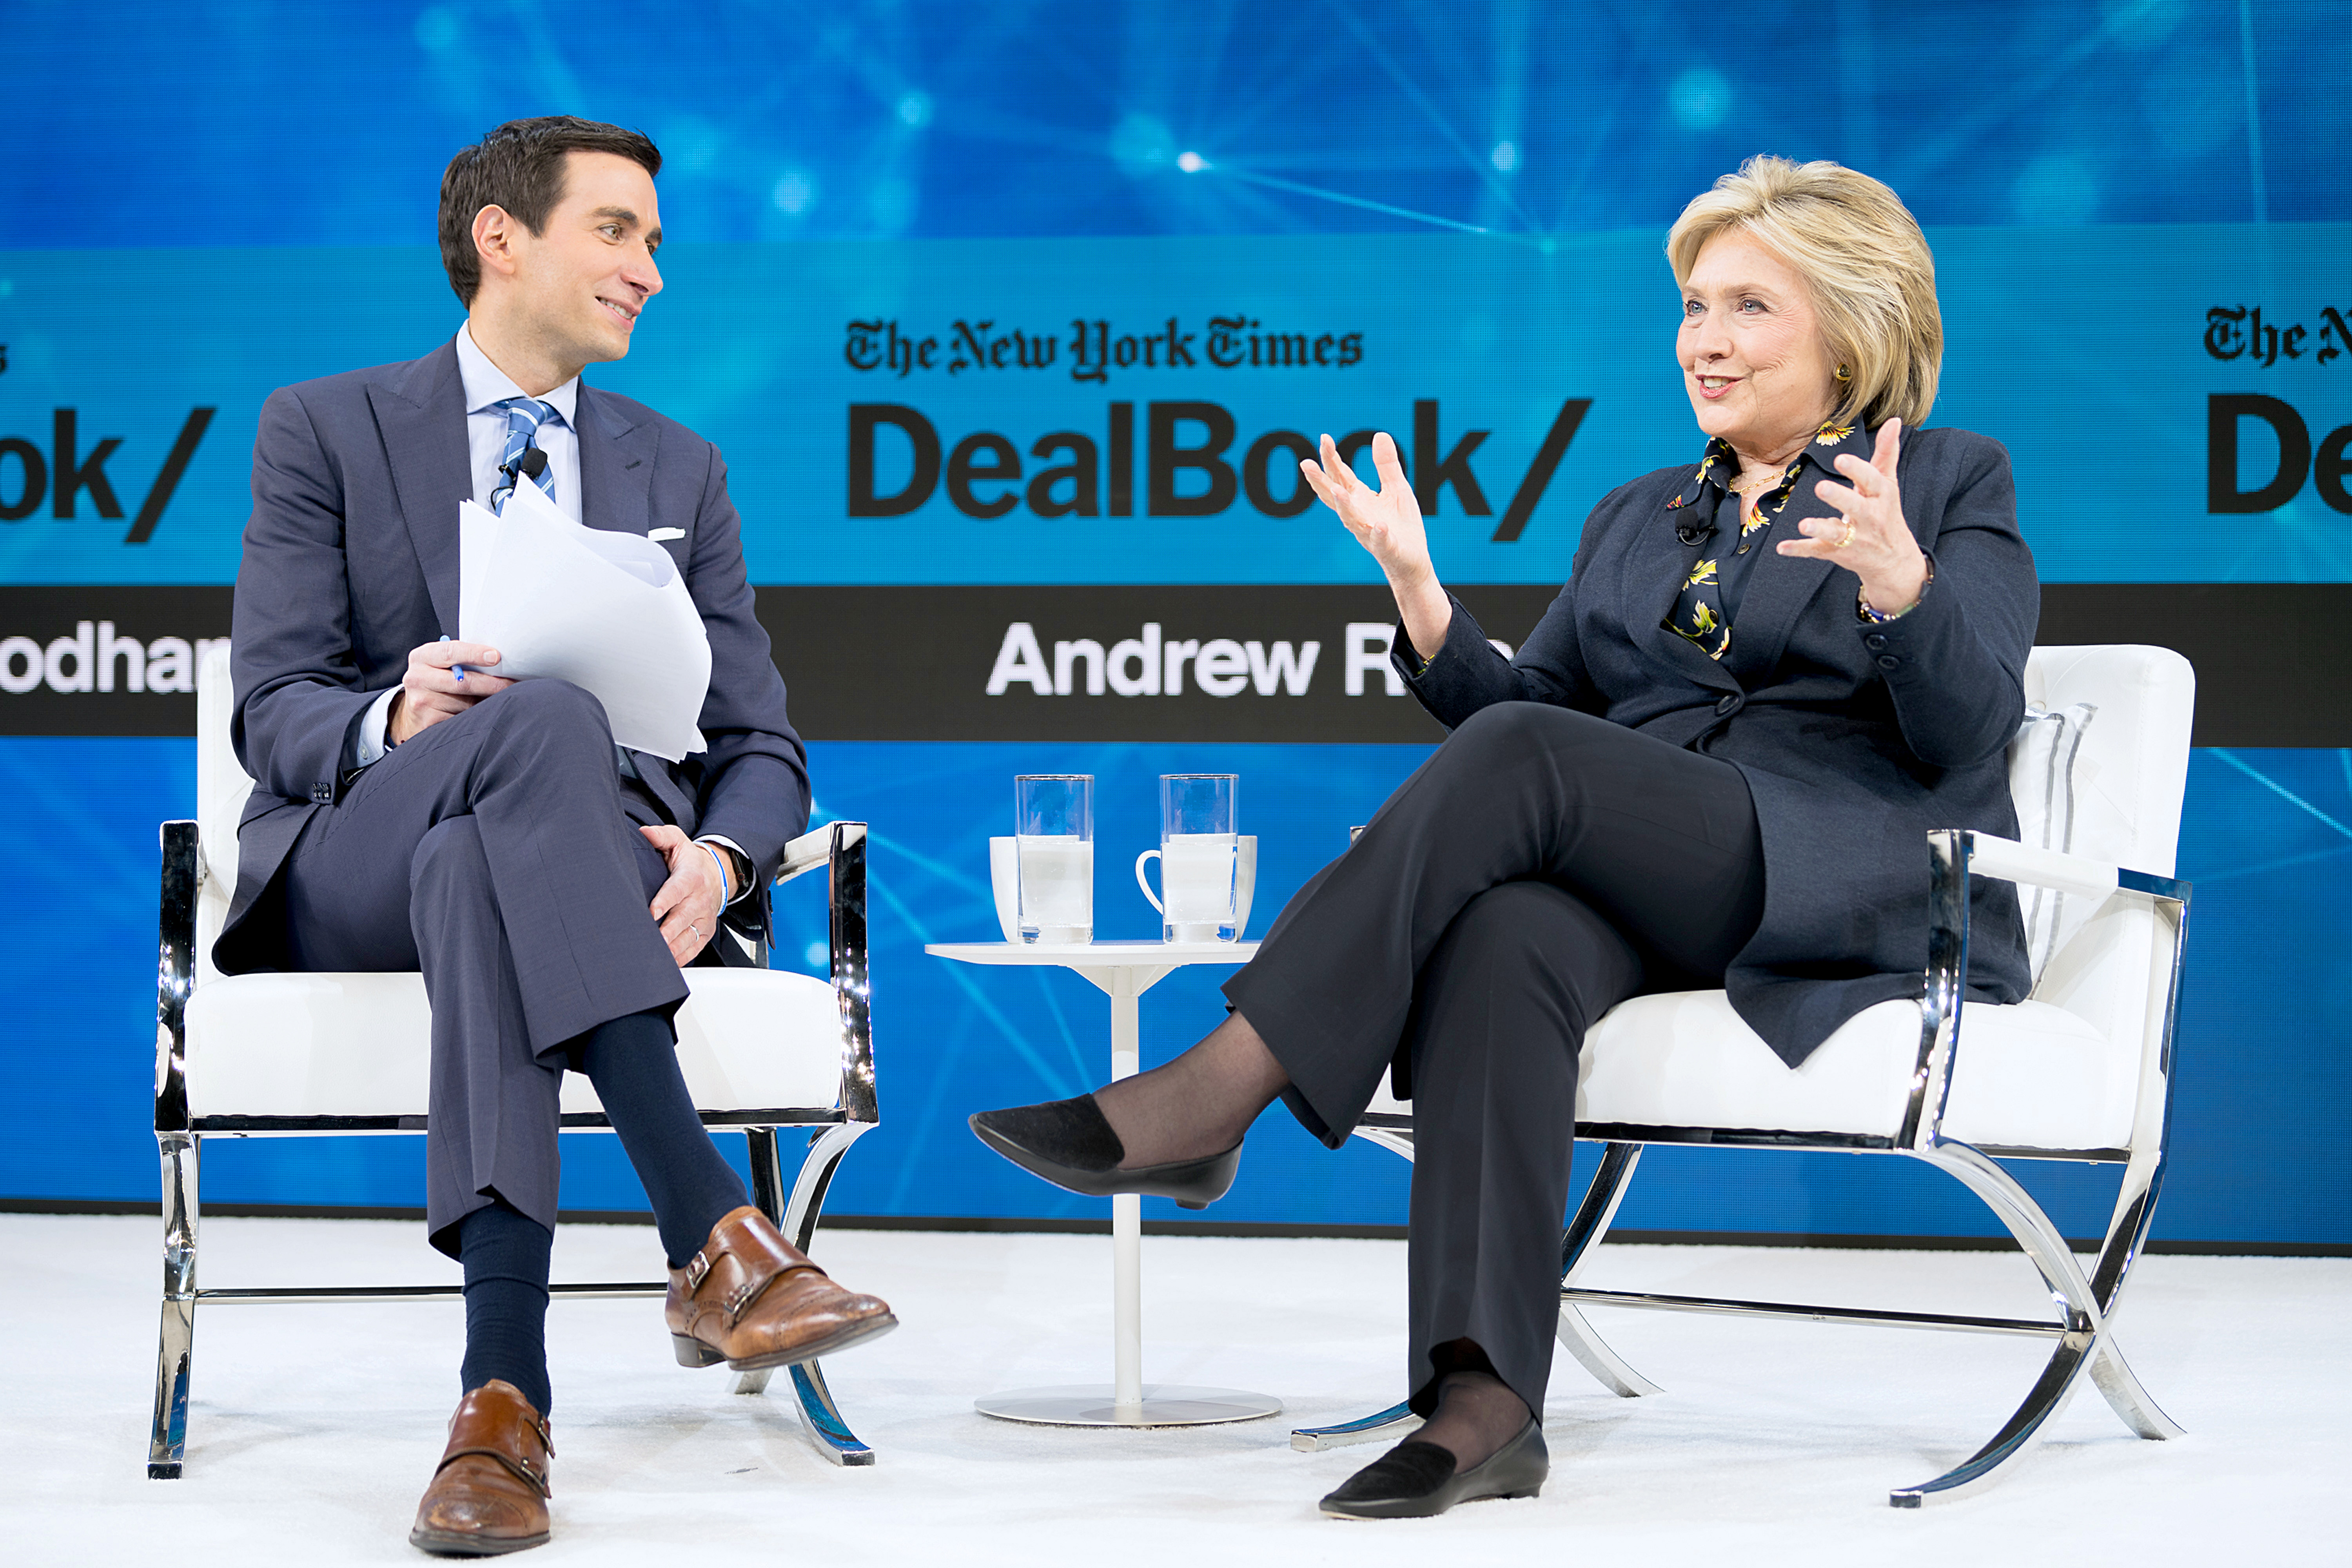 NEW YORK, NEW YORK - NOVEMBER 06: Andrew Ross Sorkin, Editor at Large, Columnist and Founder, DealBook, The New York Times speaks with Hillary Rodham Clinton, Former First Lady, U.S. Senator, U.S. Secretary of State onstage at 2019 New York Times Dealbook on November 06, 2019 in New York City. (Photo by Mike Cohen/Getty Images for The New York Times)